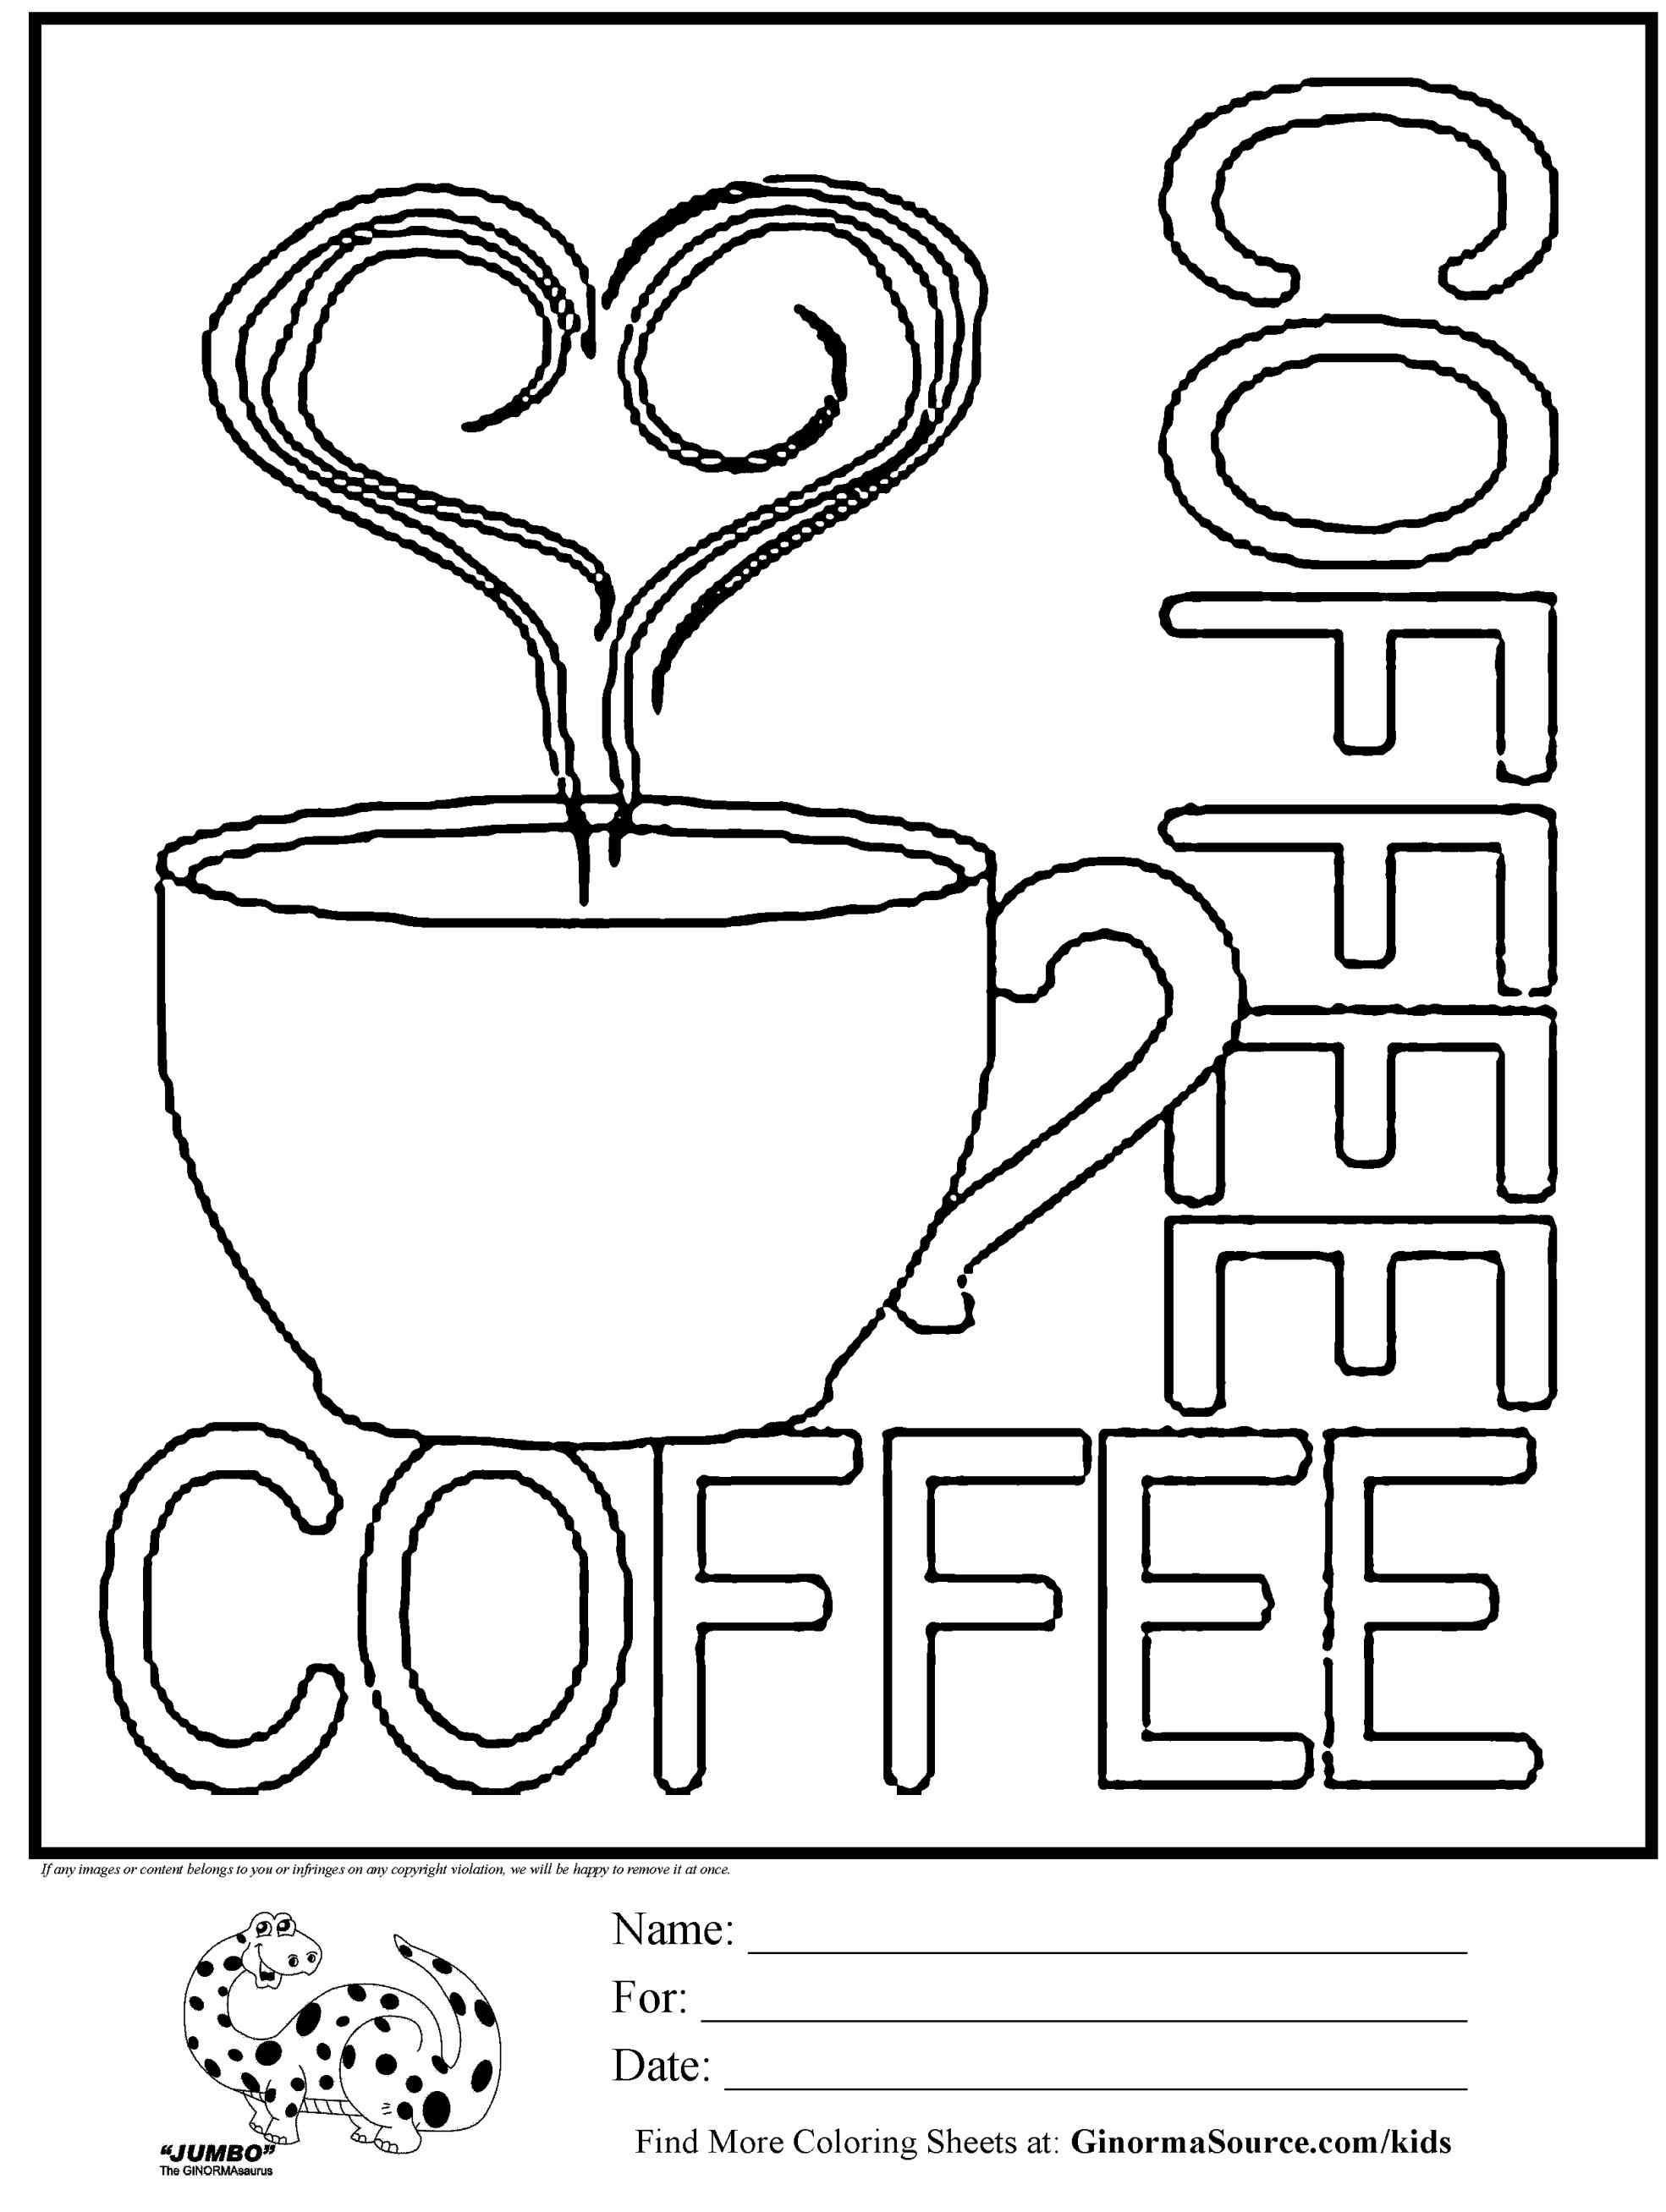 Starbucks Coloring Pages  Successful Starbucks Coloring Page How To Draw A Unicorn